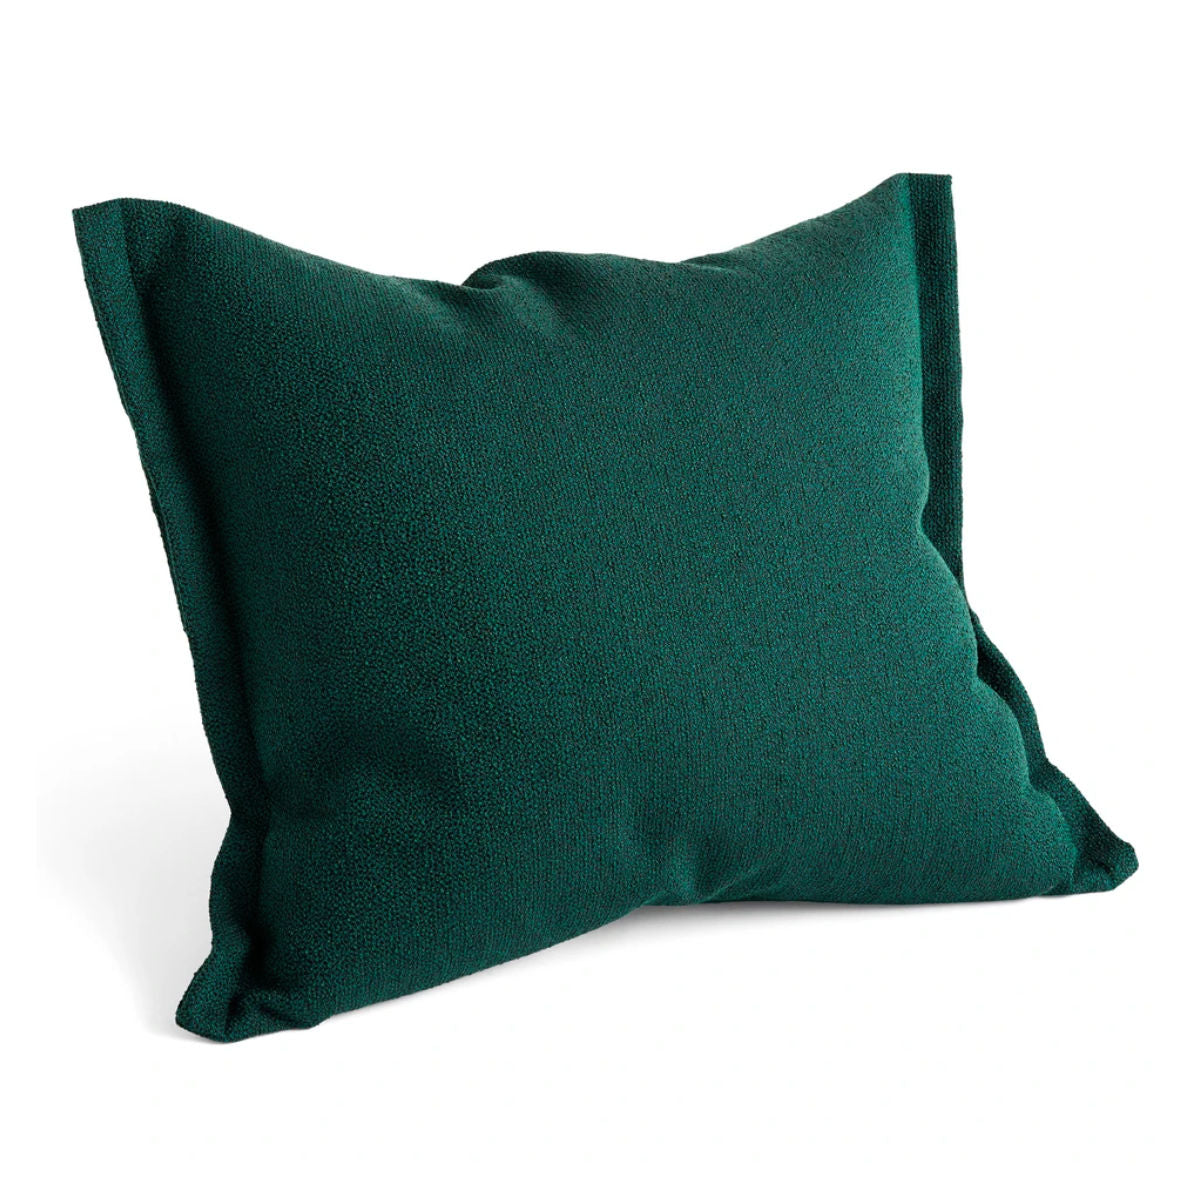 Hay Plica Sprinkle cushion, dark green